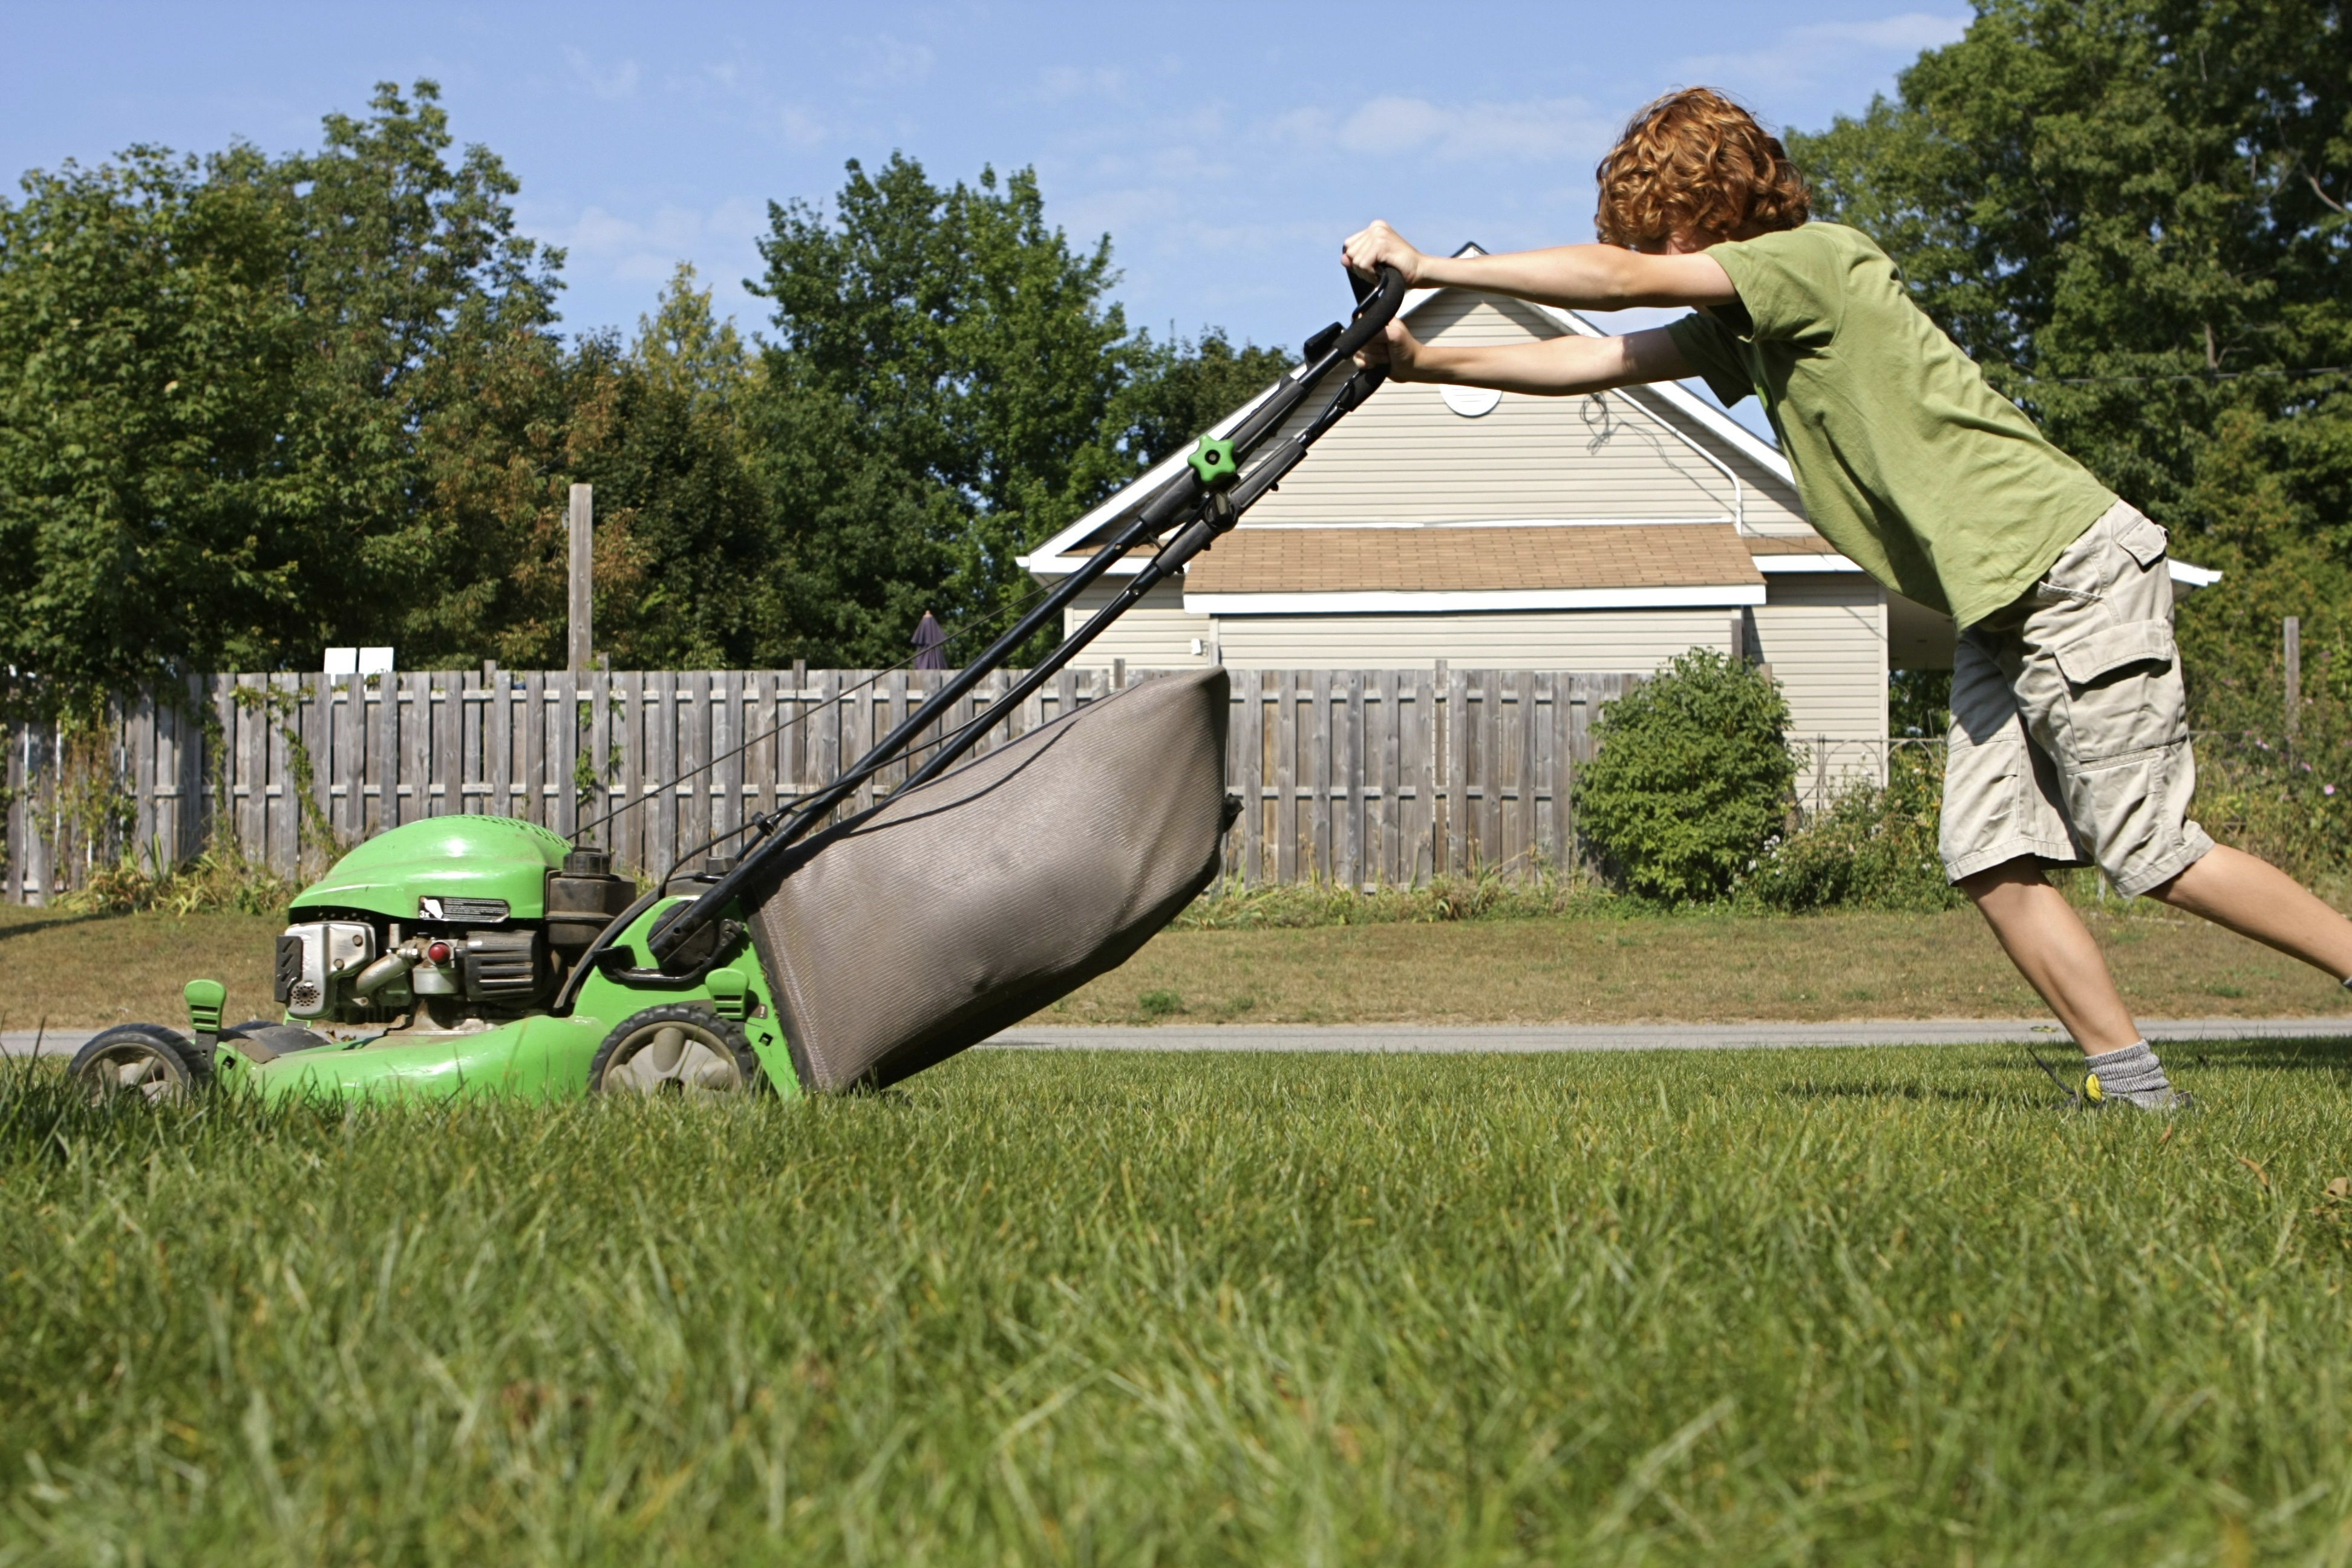 Boy and Lawn Mower